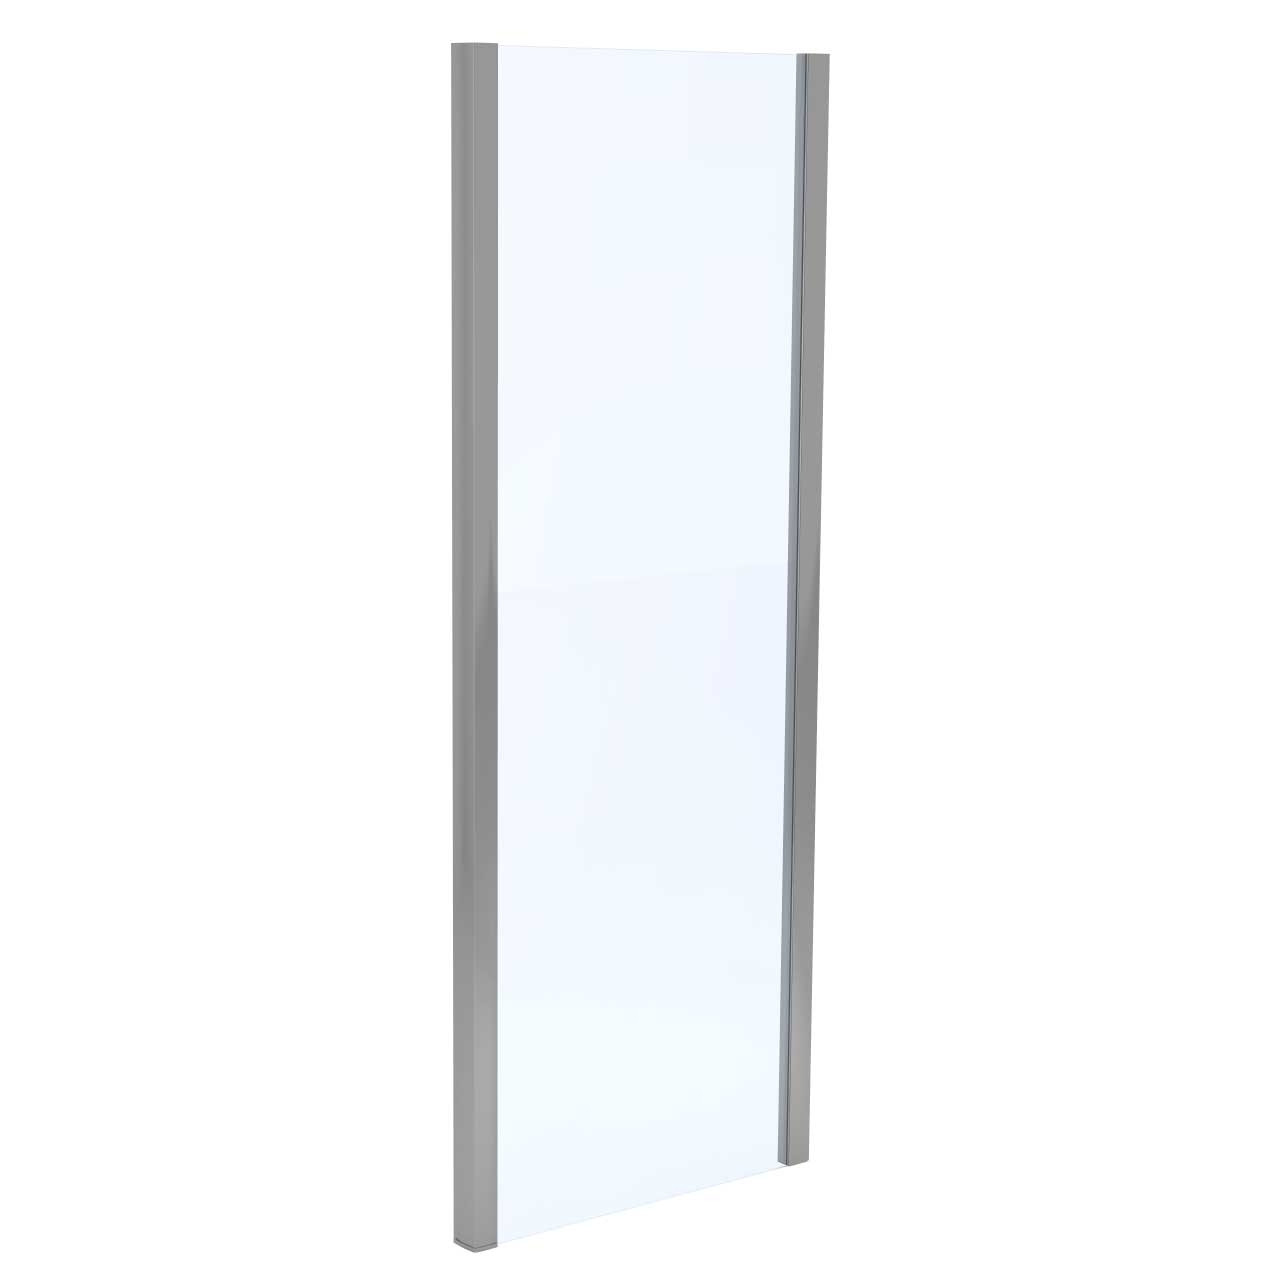 Series 6 1500mm x 700mm Double Sliding Door Shower Enclosure